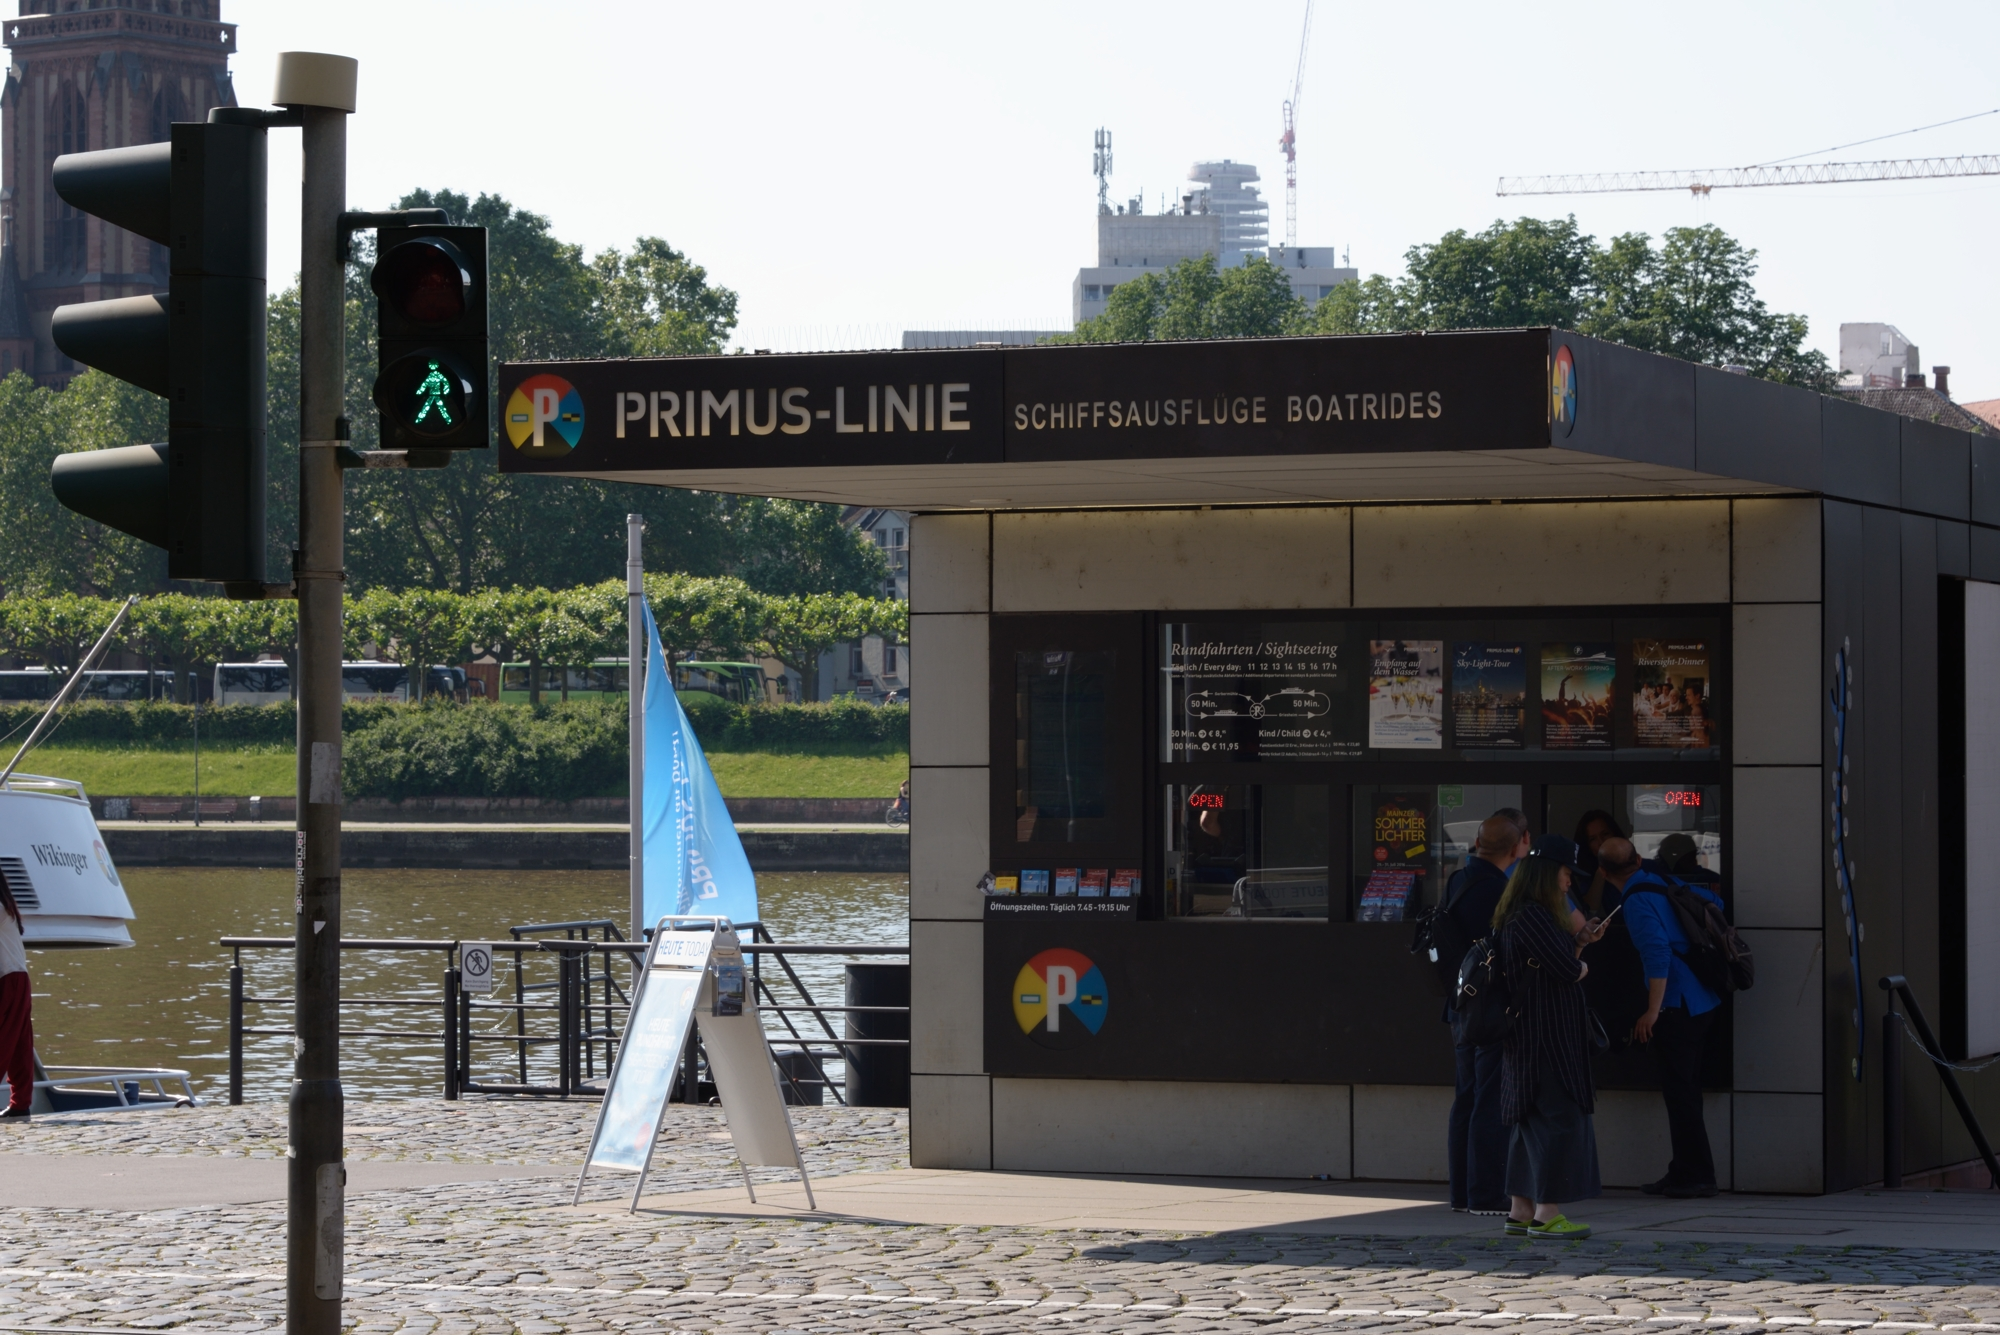 Primus Line kiosk, by the Eiserner Steg